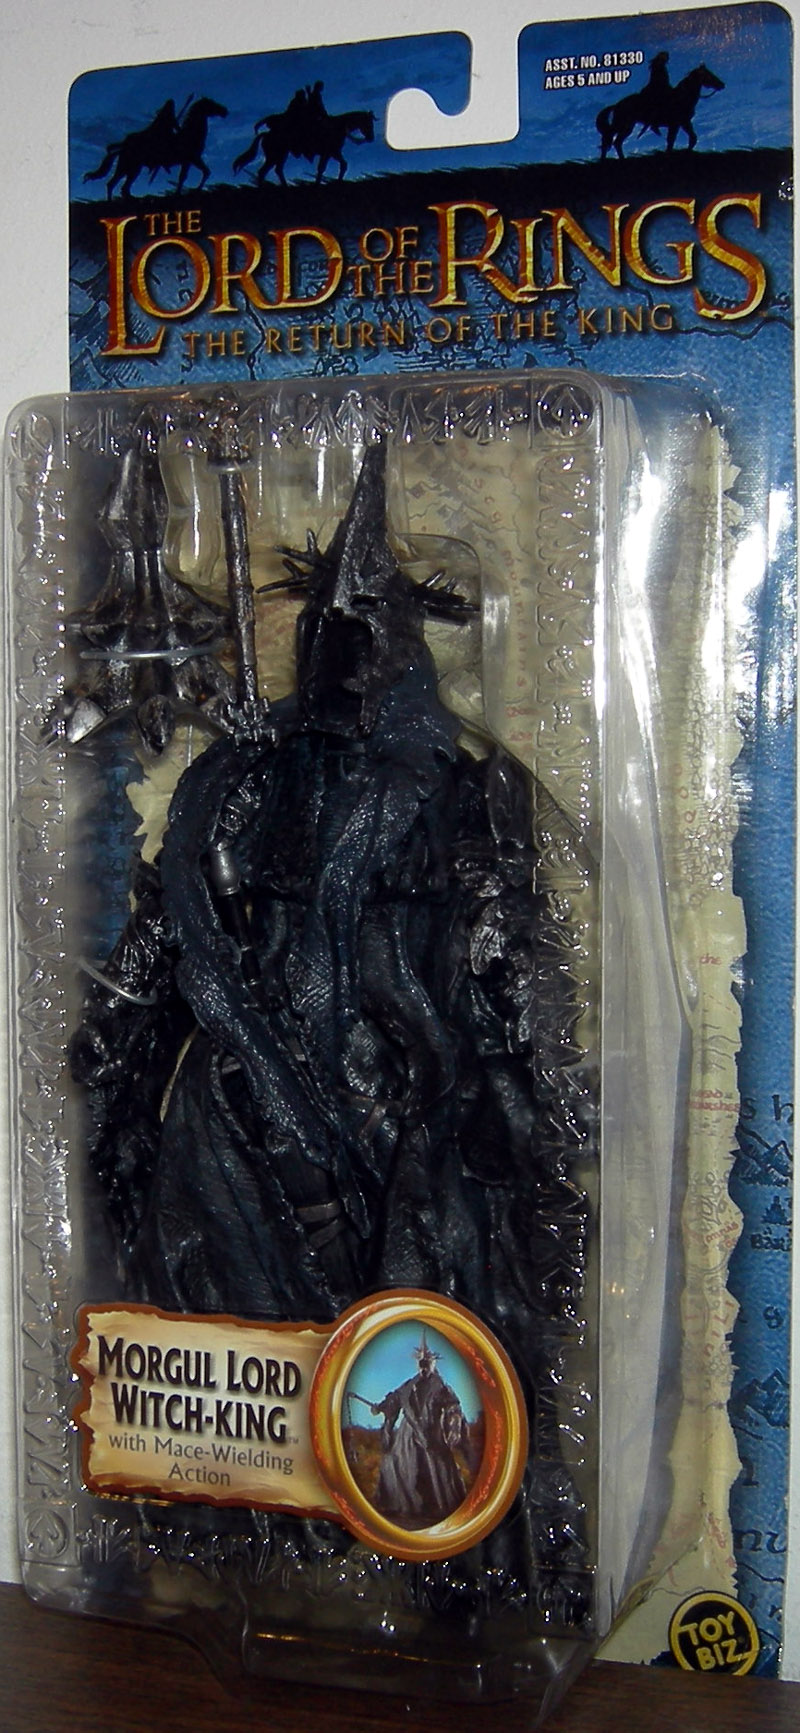 Morgul Lord Witch-King (Trilogy)